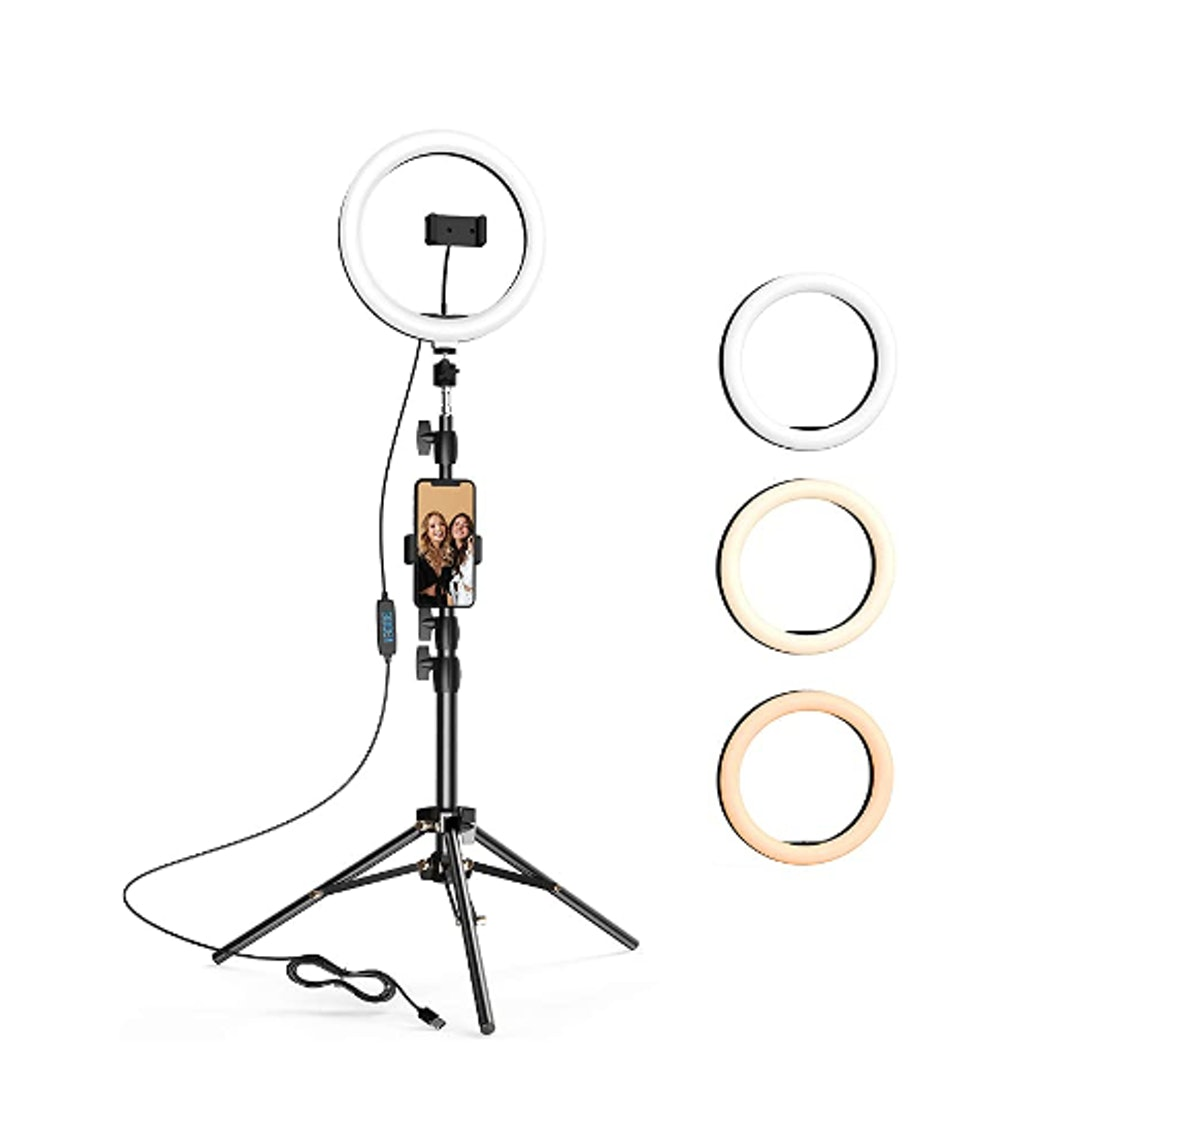 LETSCOM 10.2 inch Selfie Ring Light with Tripod Stand